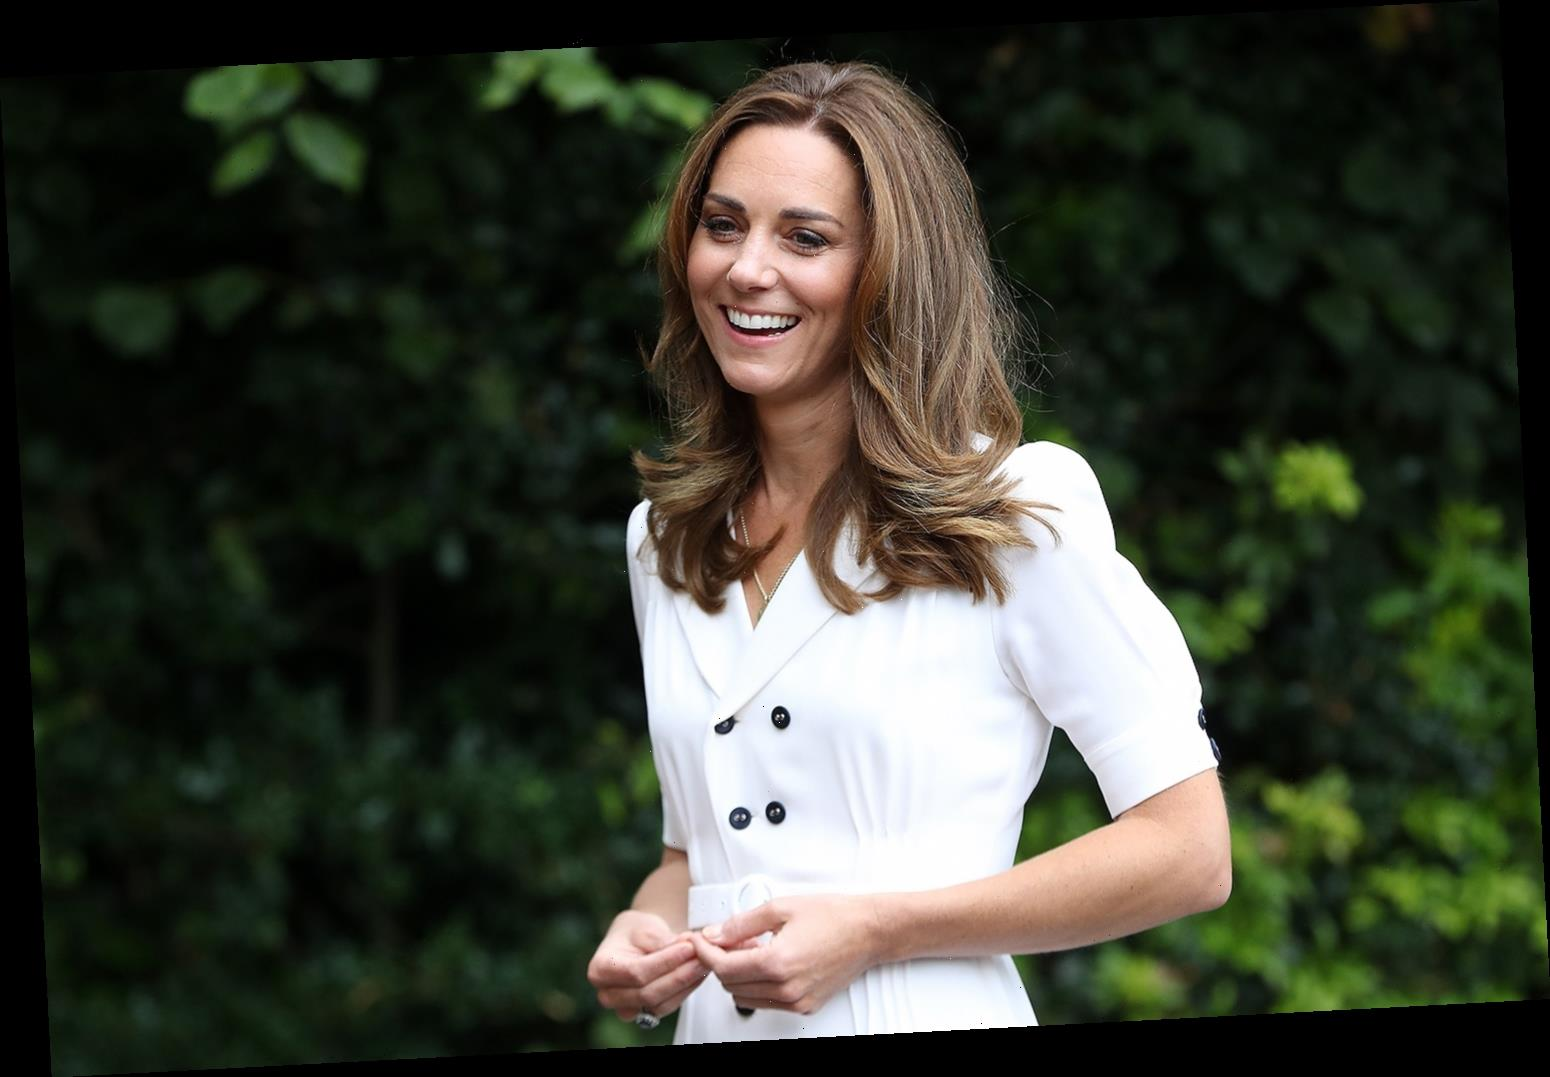 Kate Middleton Shares Final 100 Portraits Chosen for Her Powerful Pandemic Photo Project